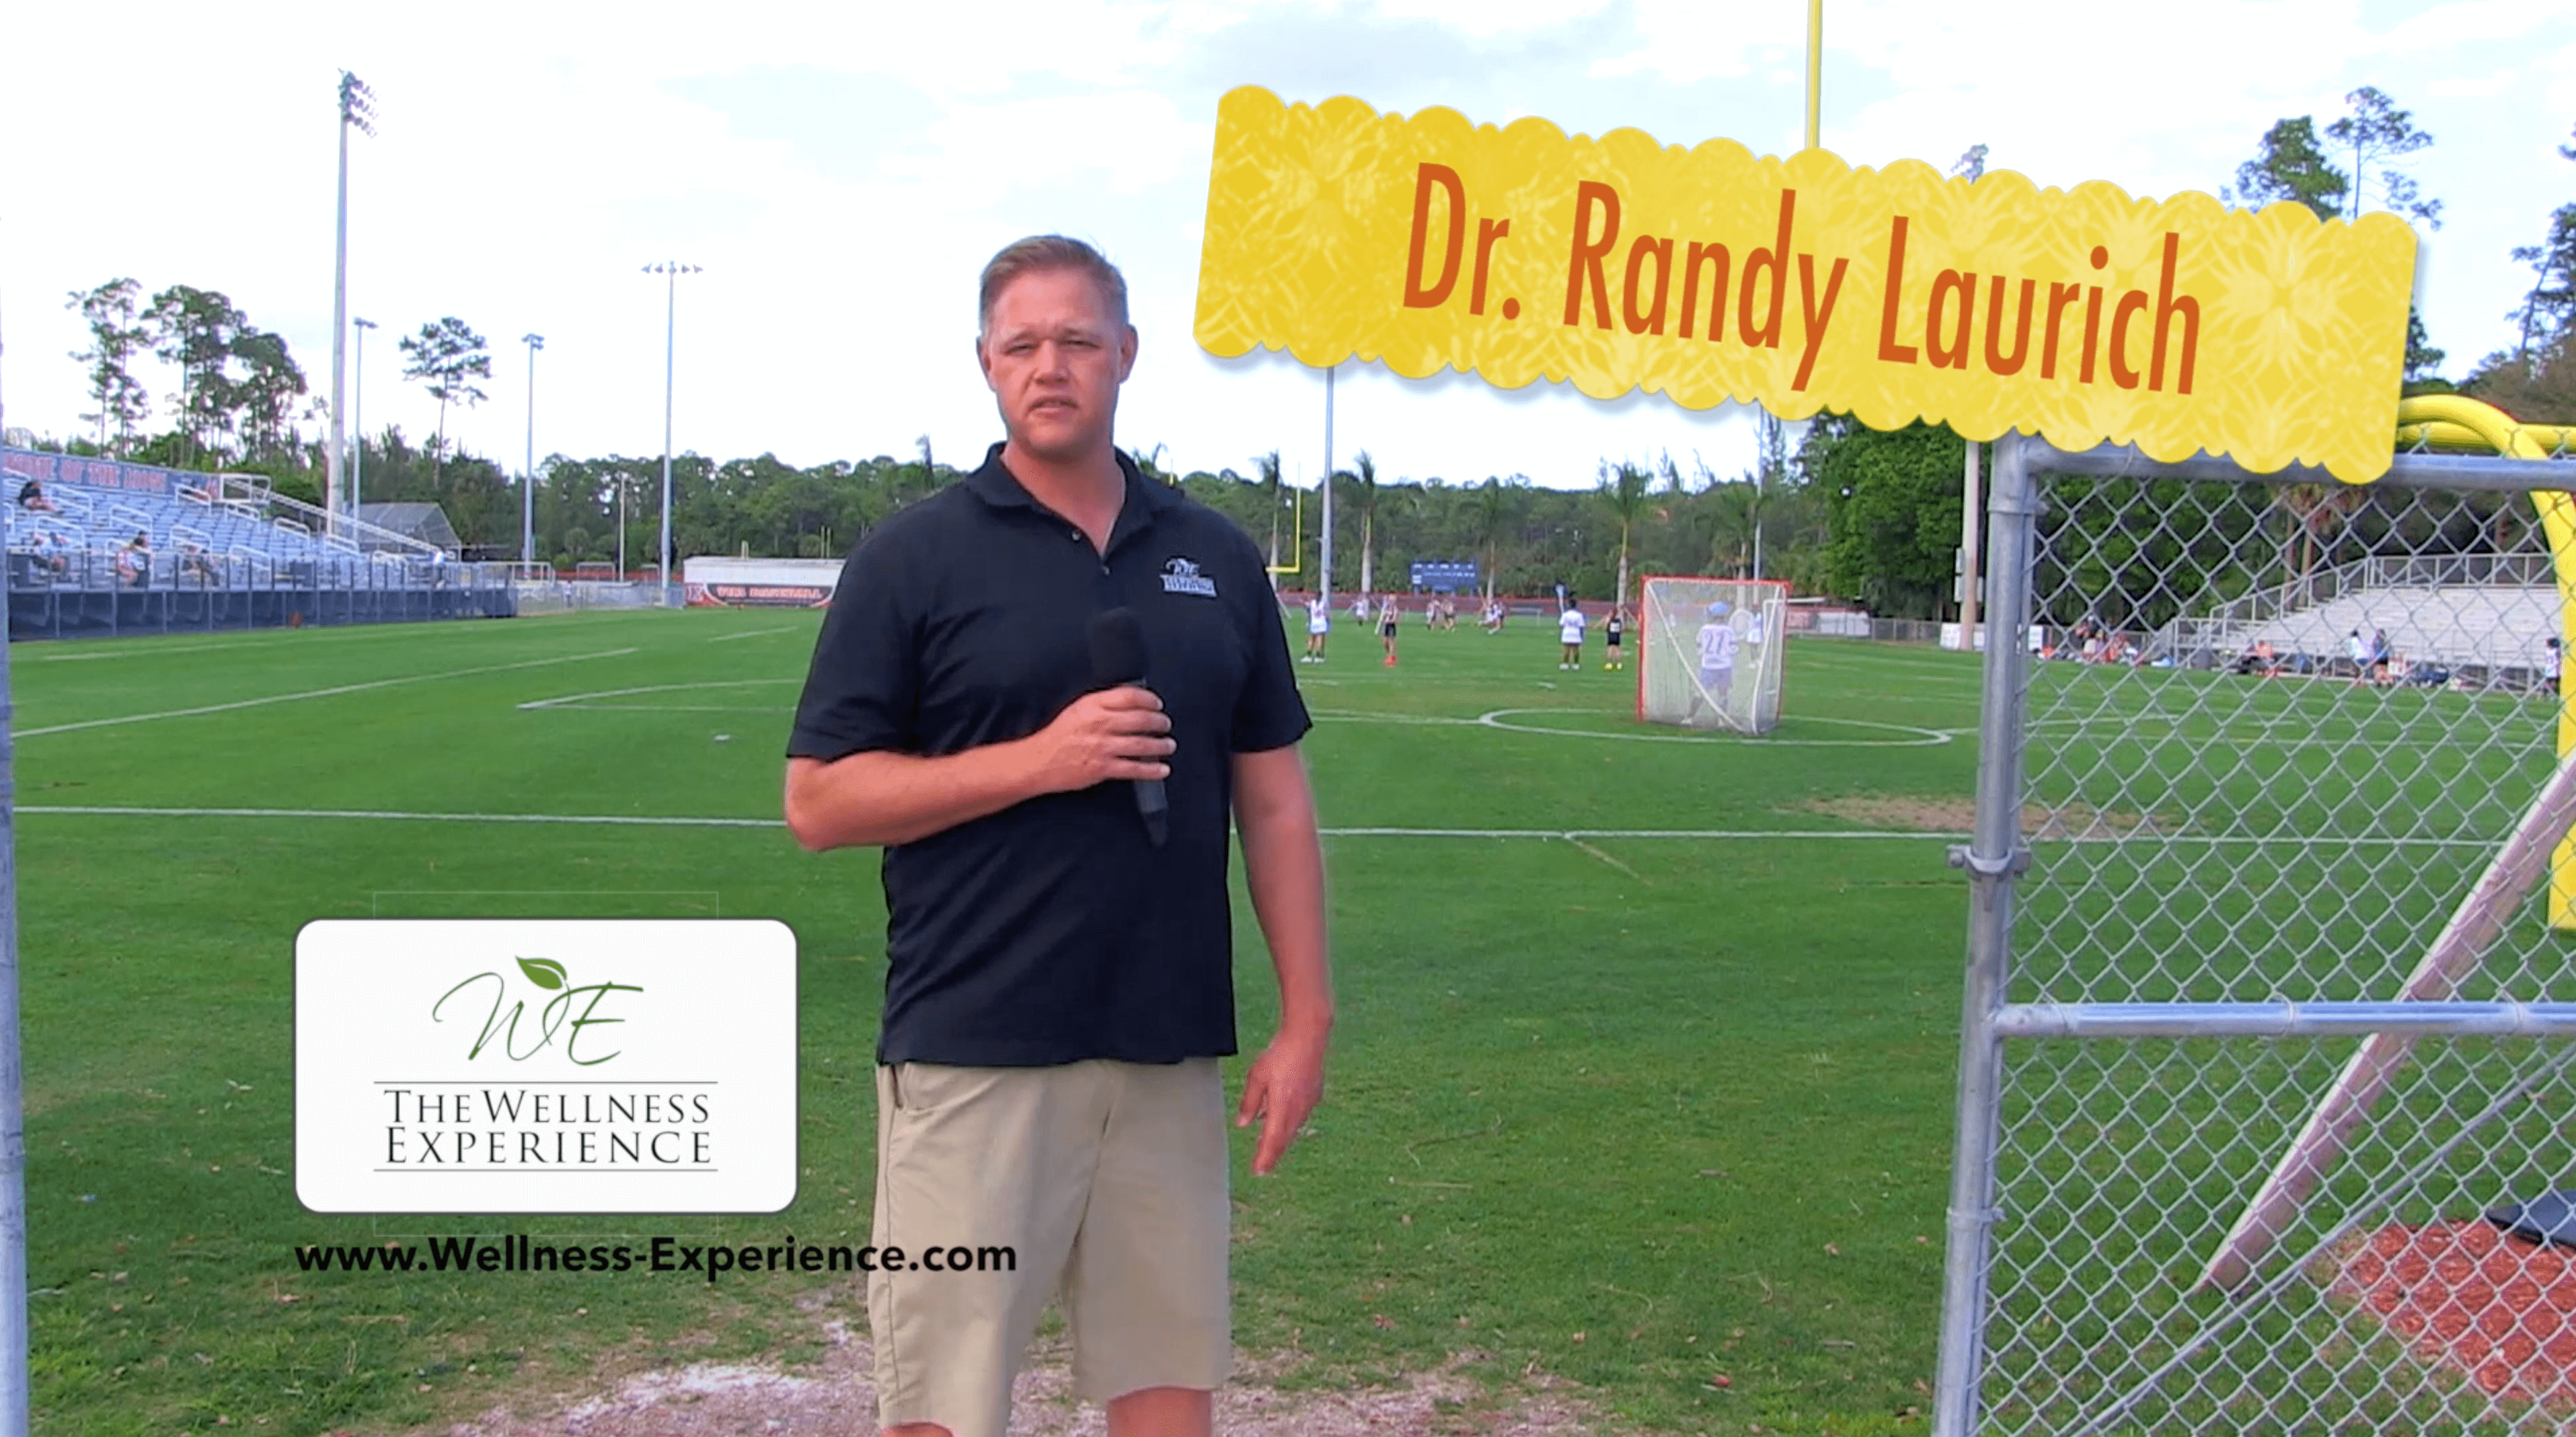 Dr. Randy At Lacrosse